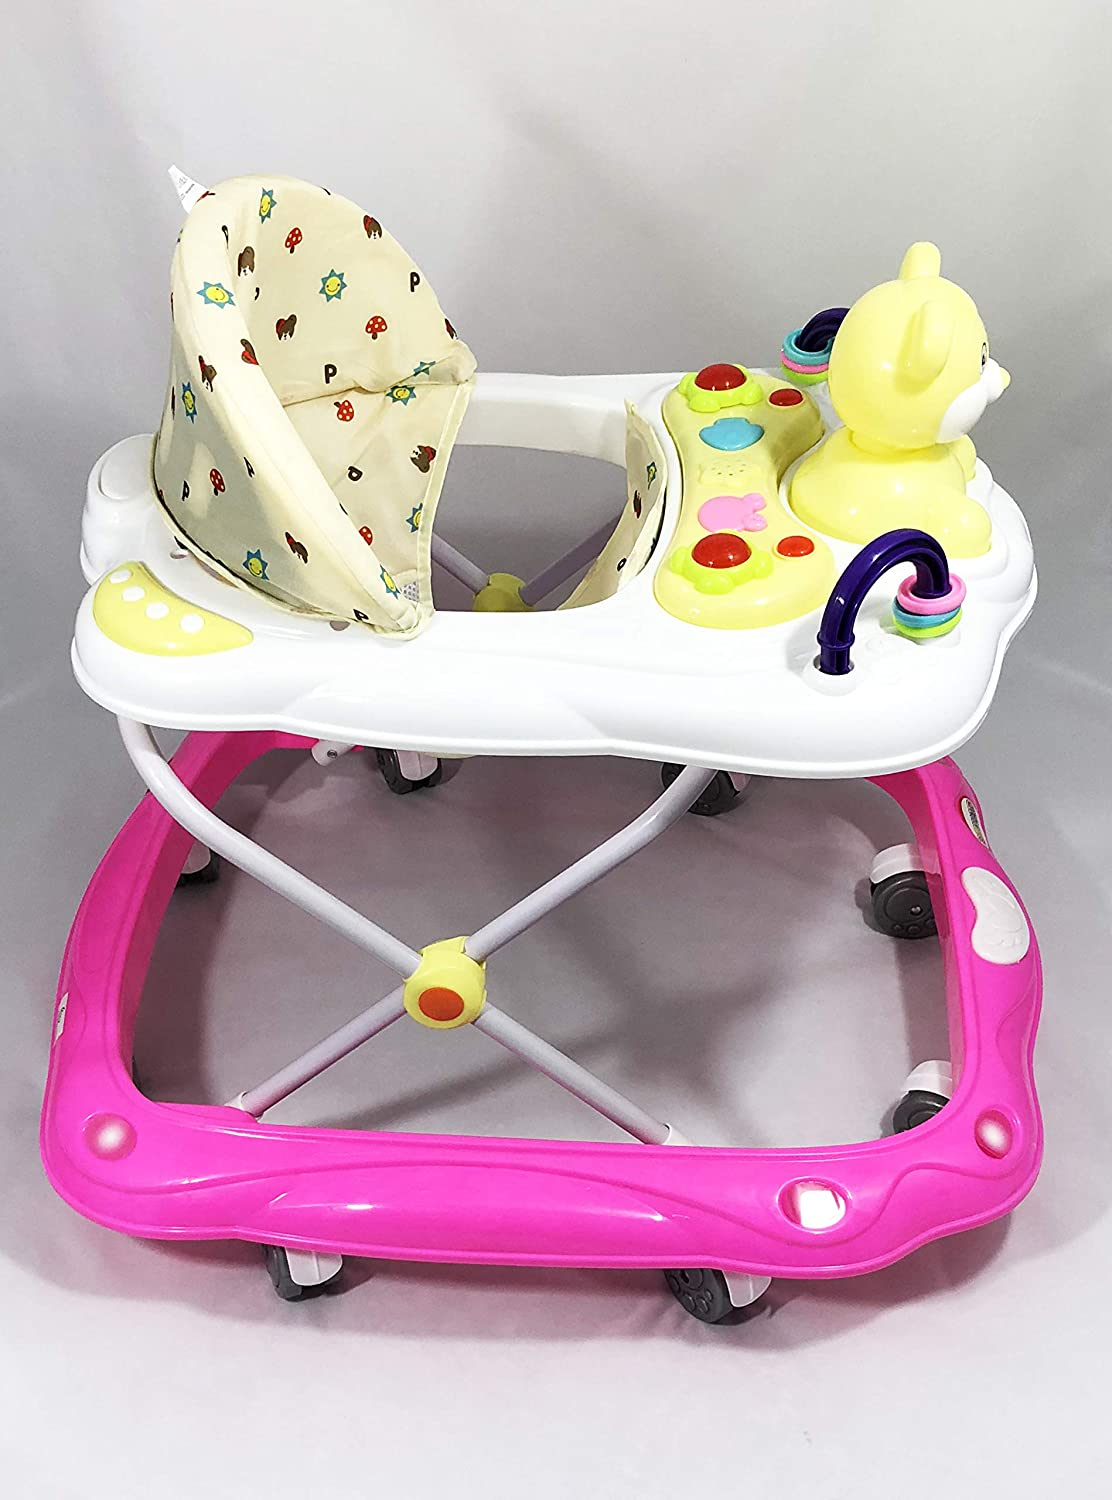 Baby Walker First Steps Push Along Bouncer Activity Music Ride On Music New (Pink 1616) WOODFIELD